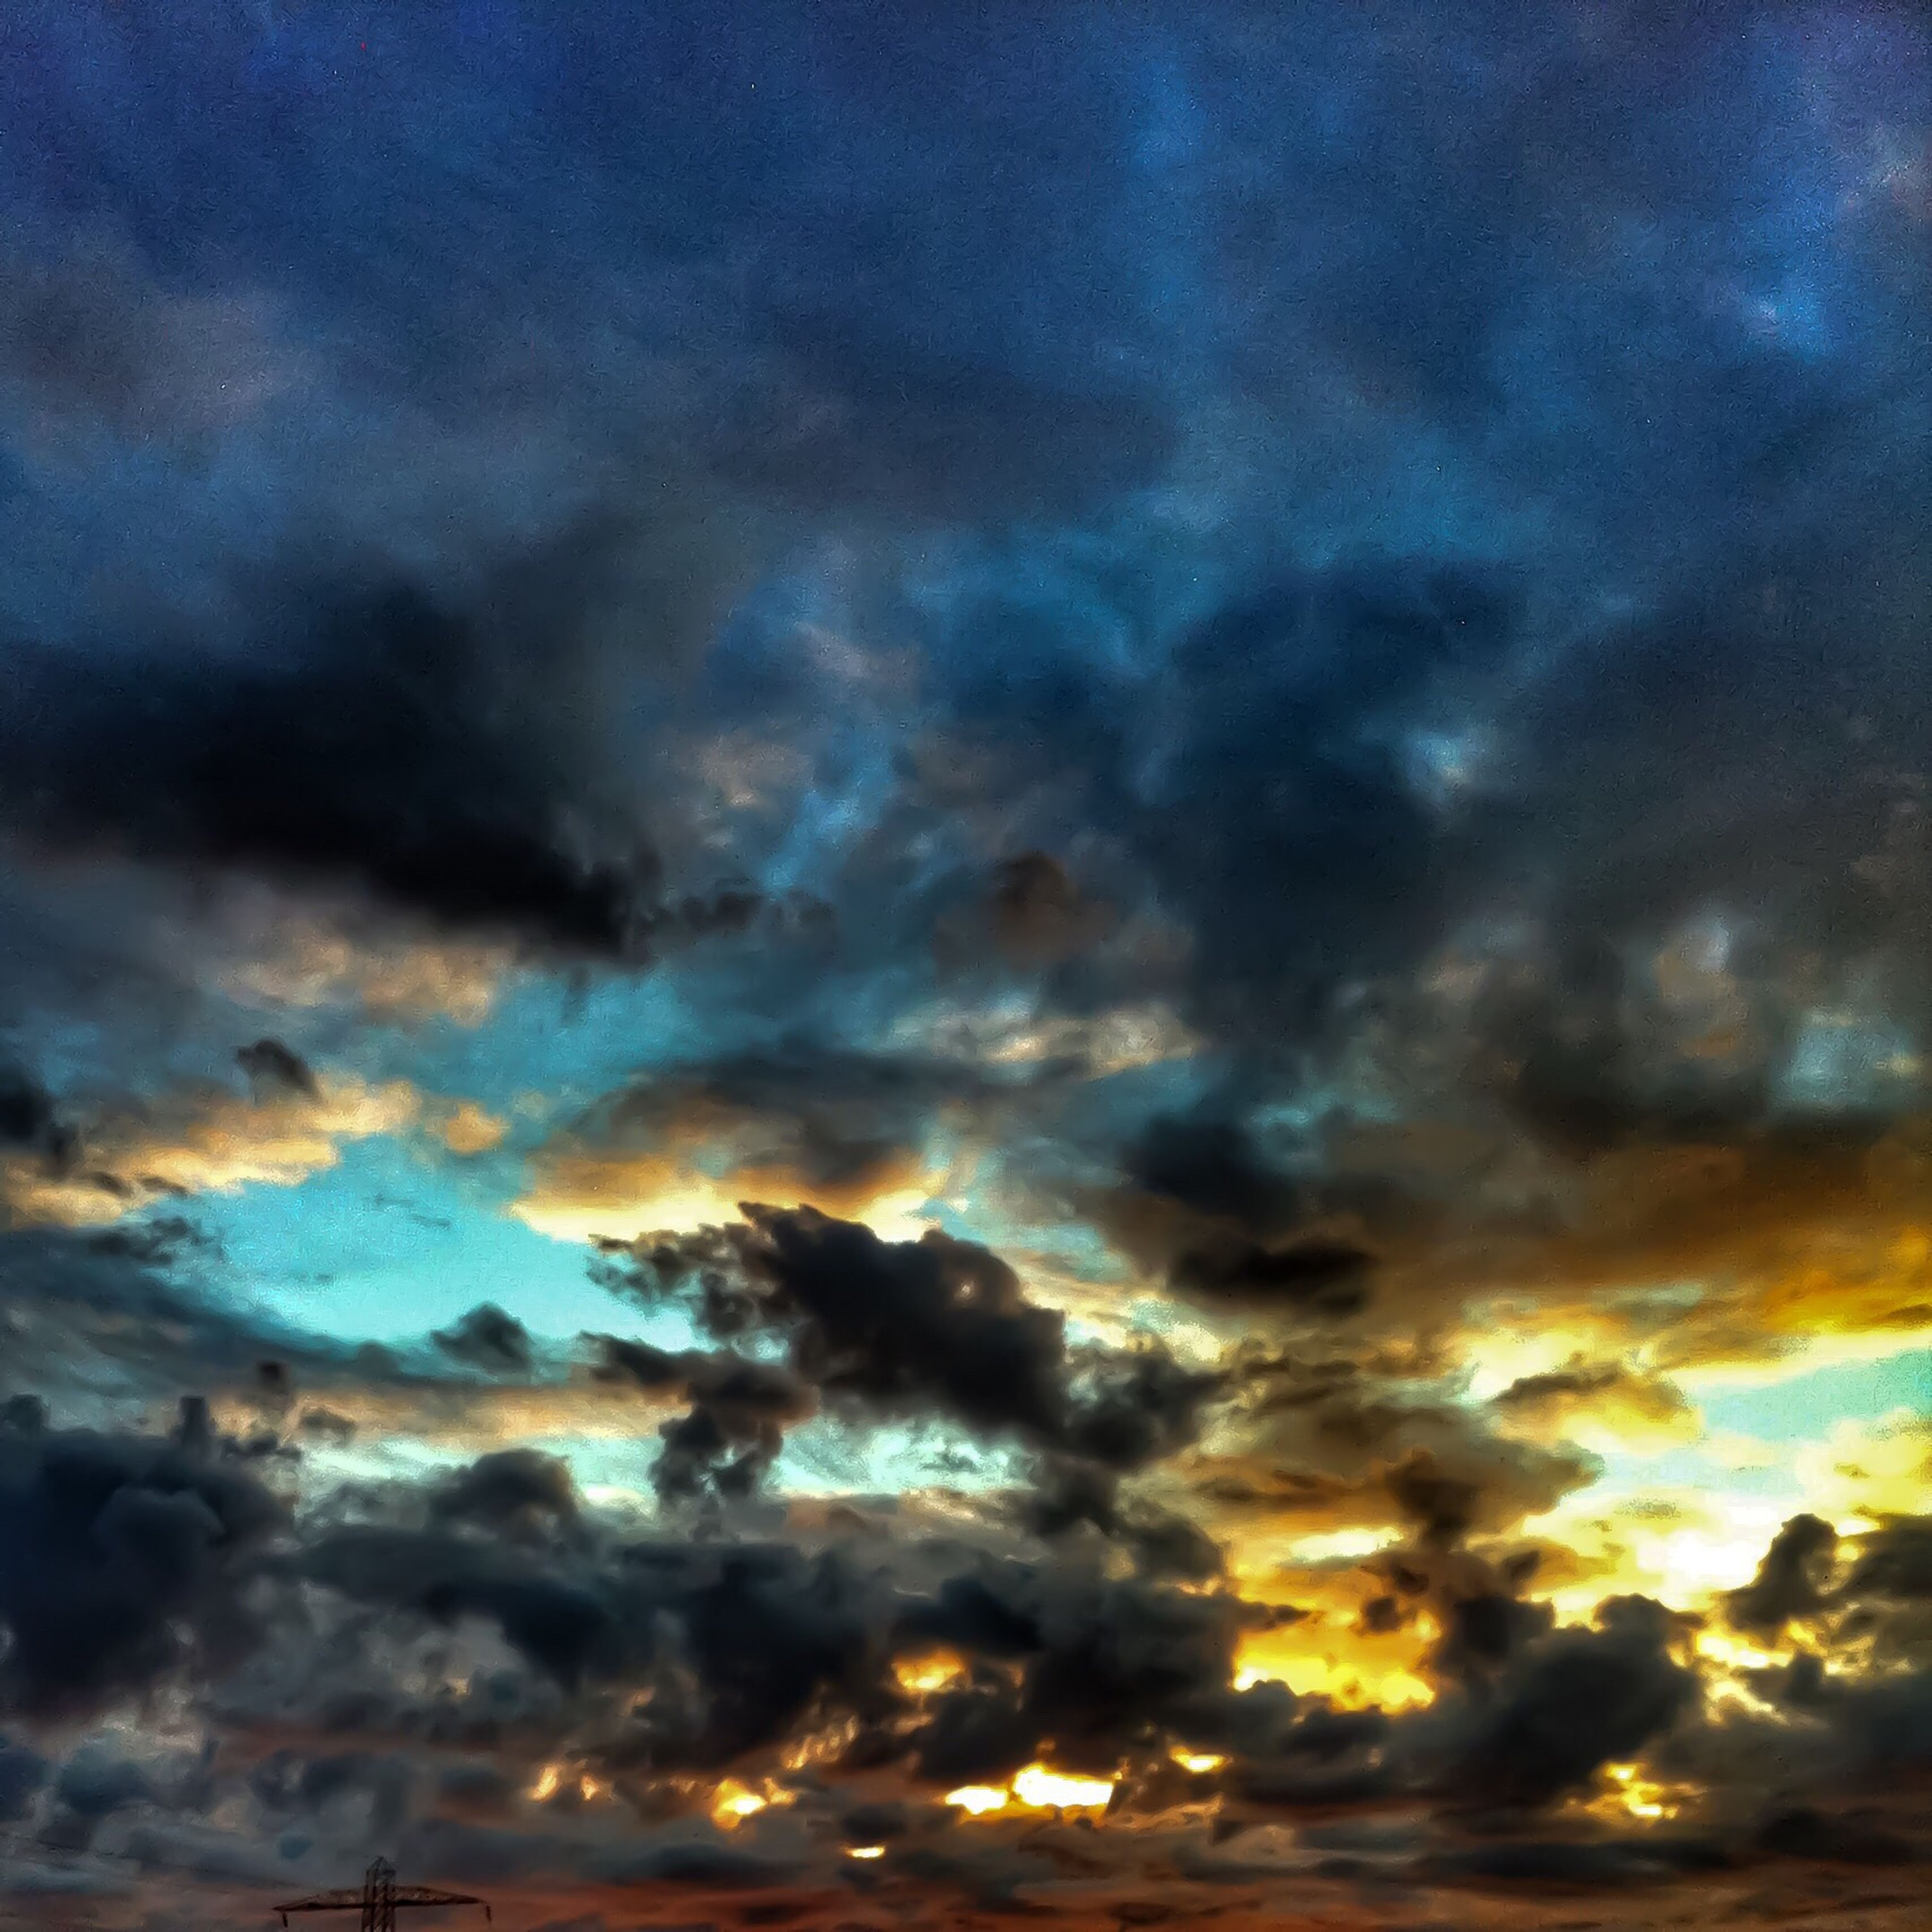 sky, cloud - sky, cloudy, beauty in nature, sunset, dramatic sky, scenics, cloudscape, low angle view, tranquility, weather, tranquil scene, sky only, nature, overcast, cloud, storm cloud, atmospheric mood, idyllic, majestic